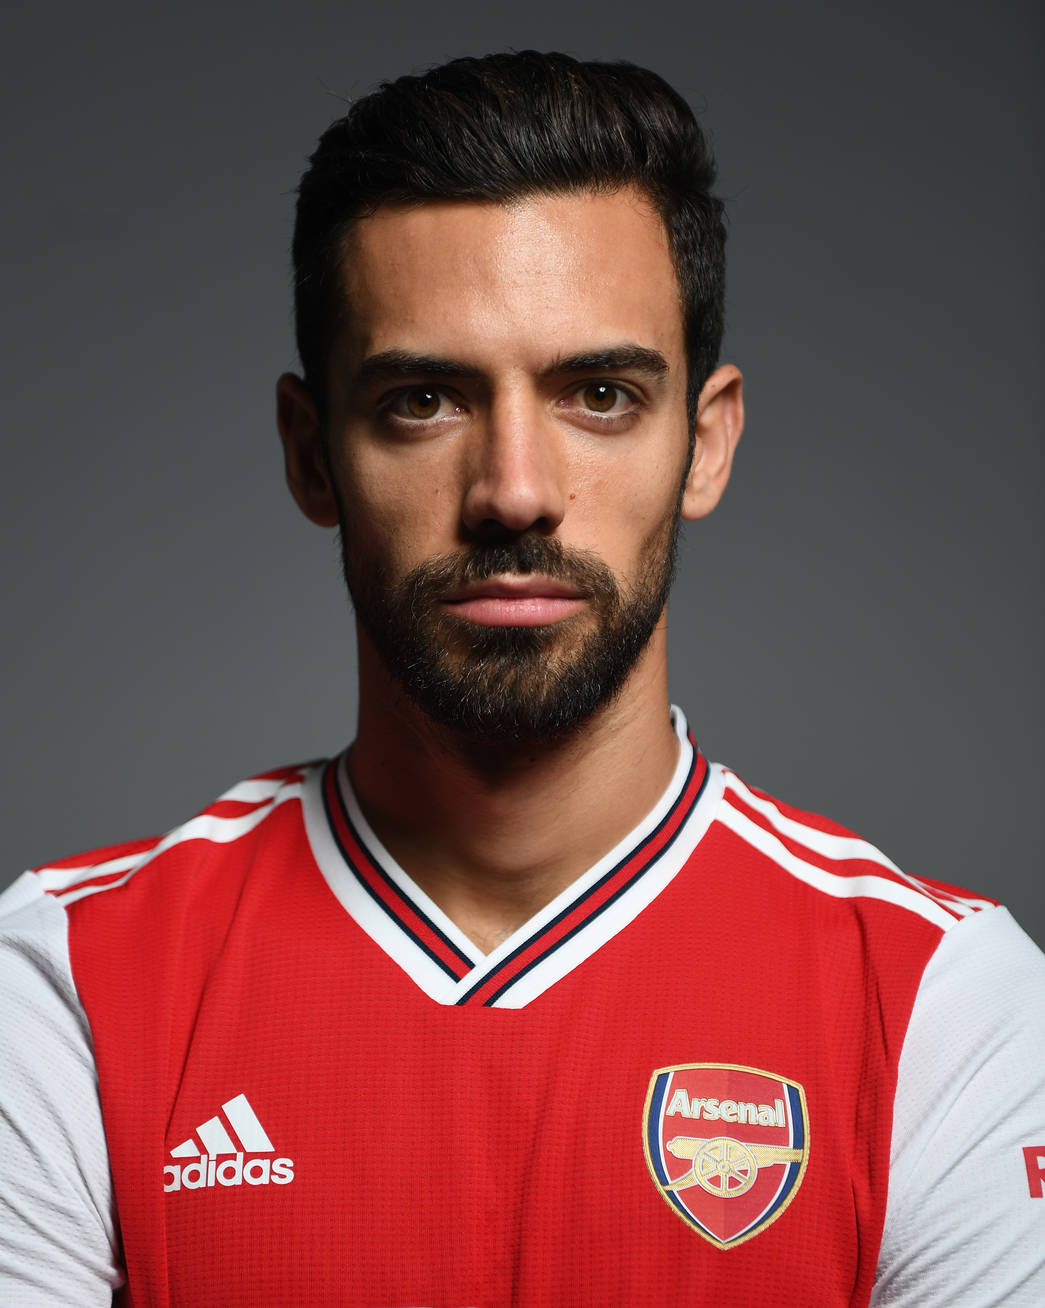 ST ALBANS, ENGLAND - JANUARY 26: Pablo Mari of Arsenal on January 26, 2020 in St Albans, England. (Photo by Stuart MacFarlane/Arsenal FC via Getty Images)